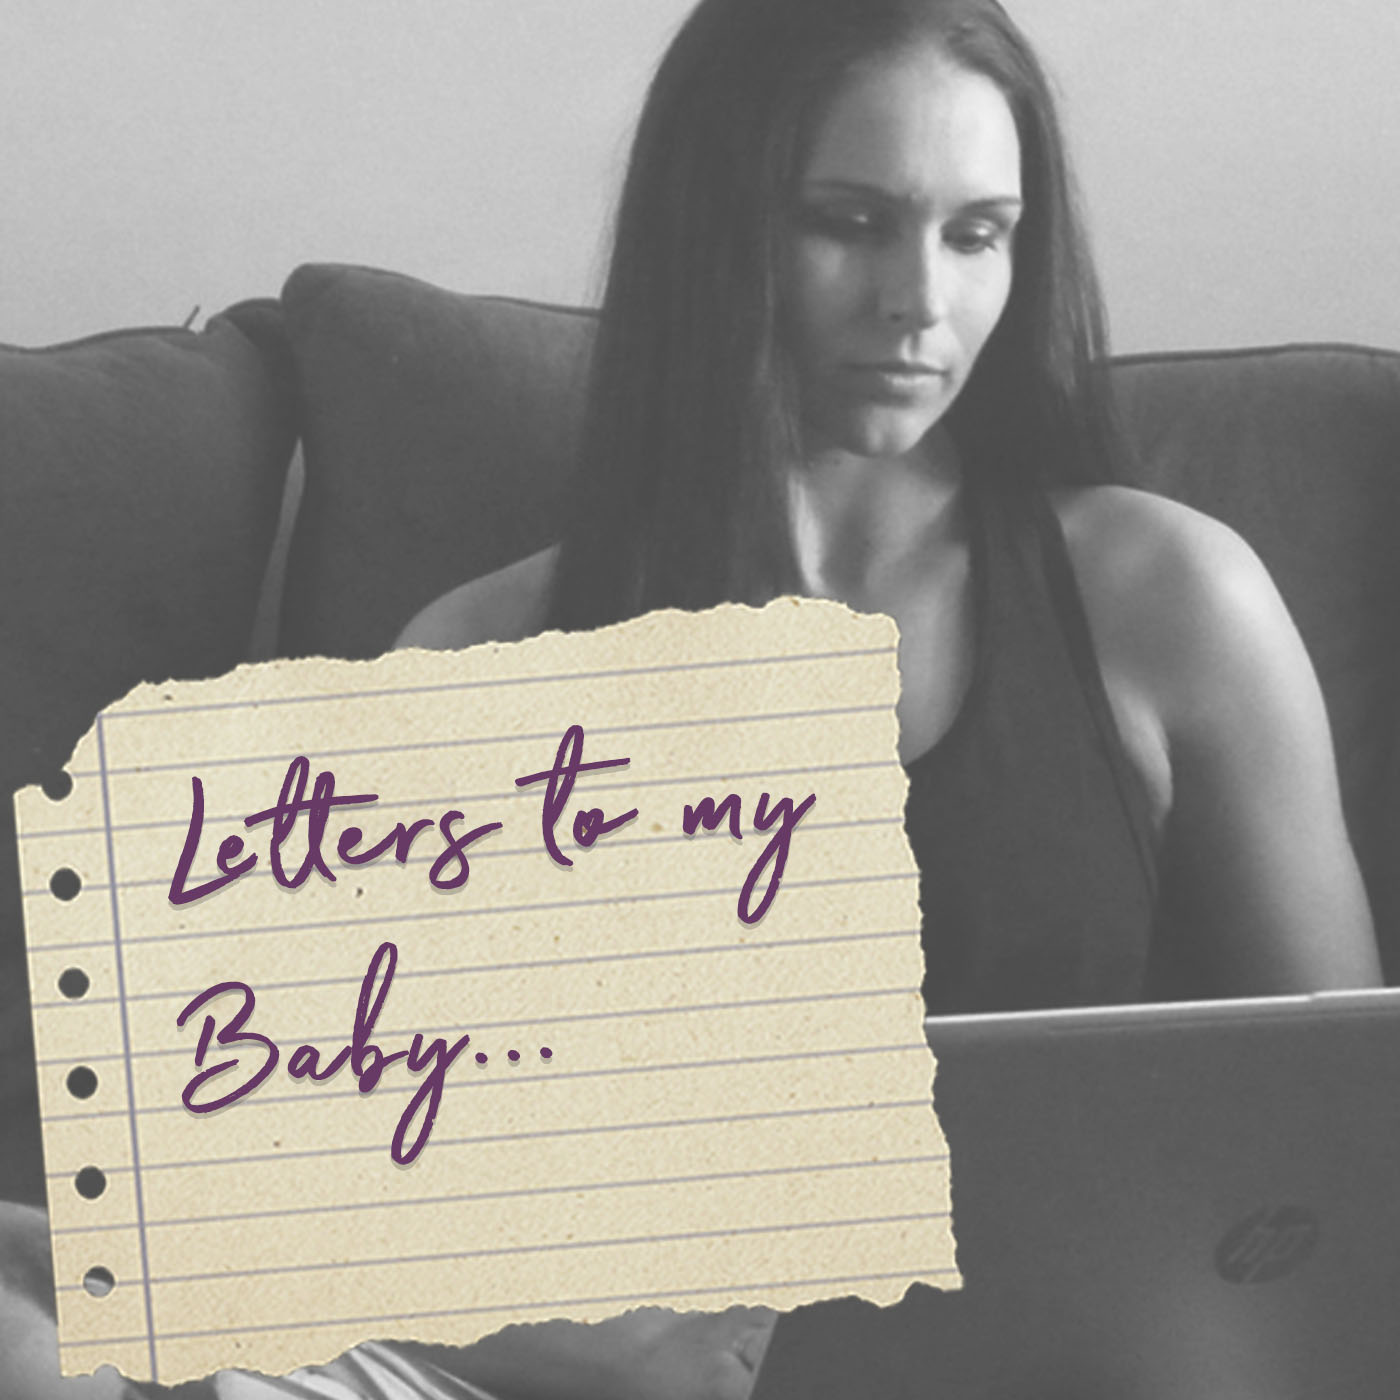 Letters To My Baby show image